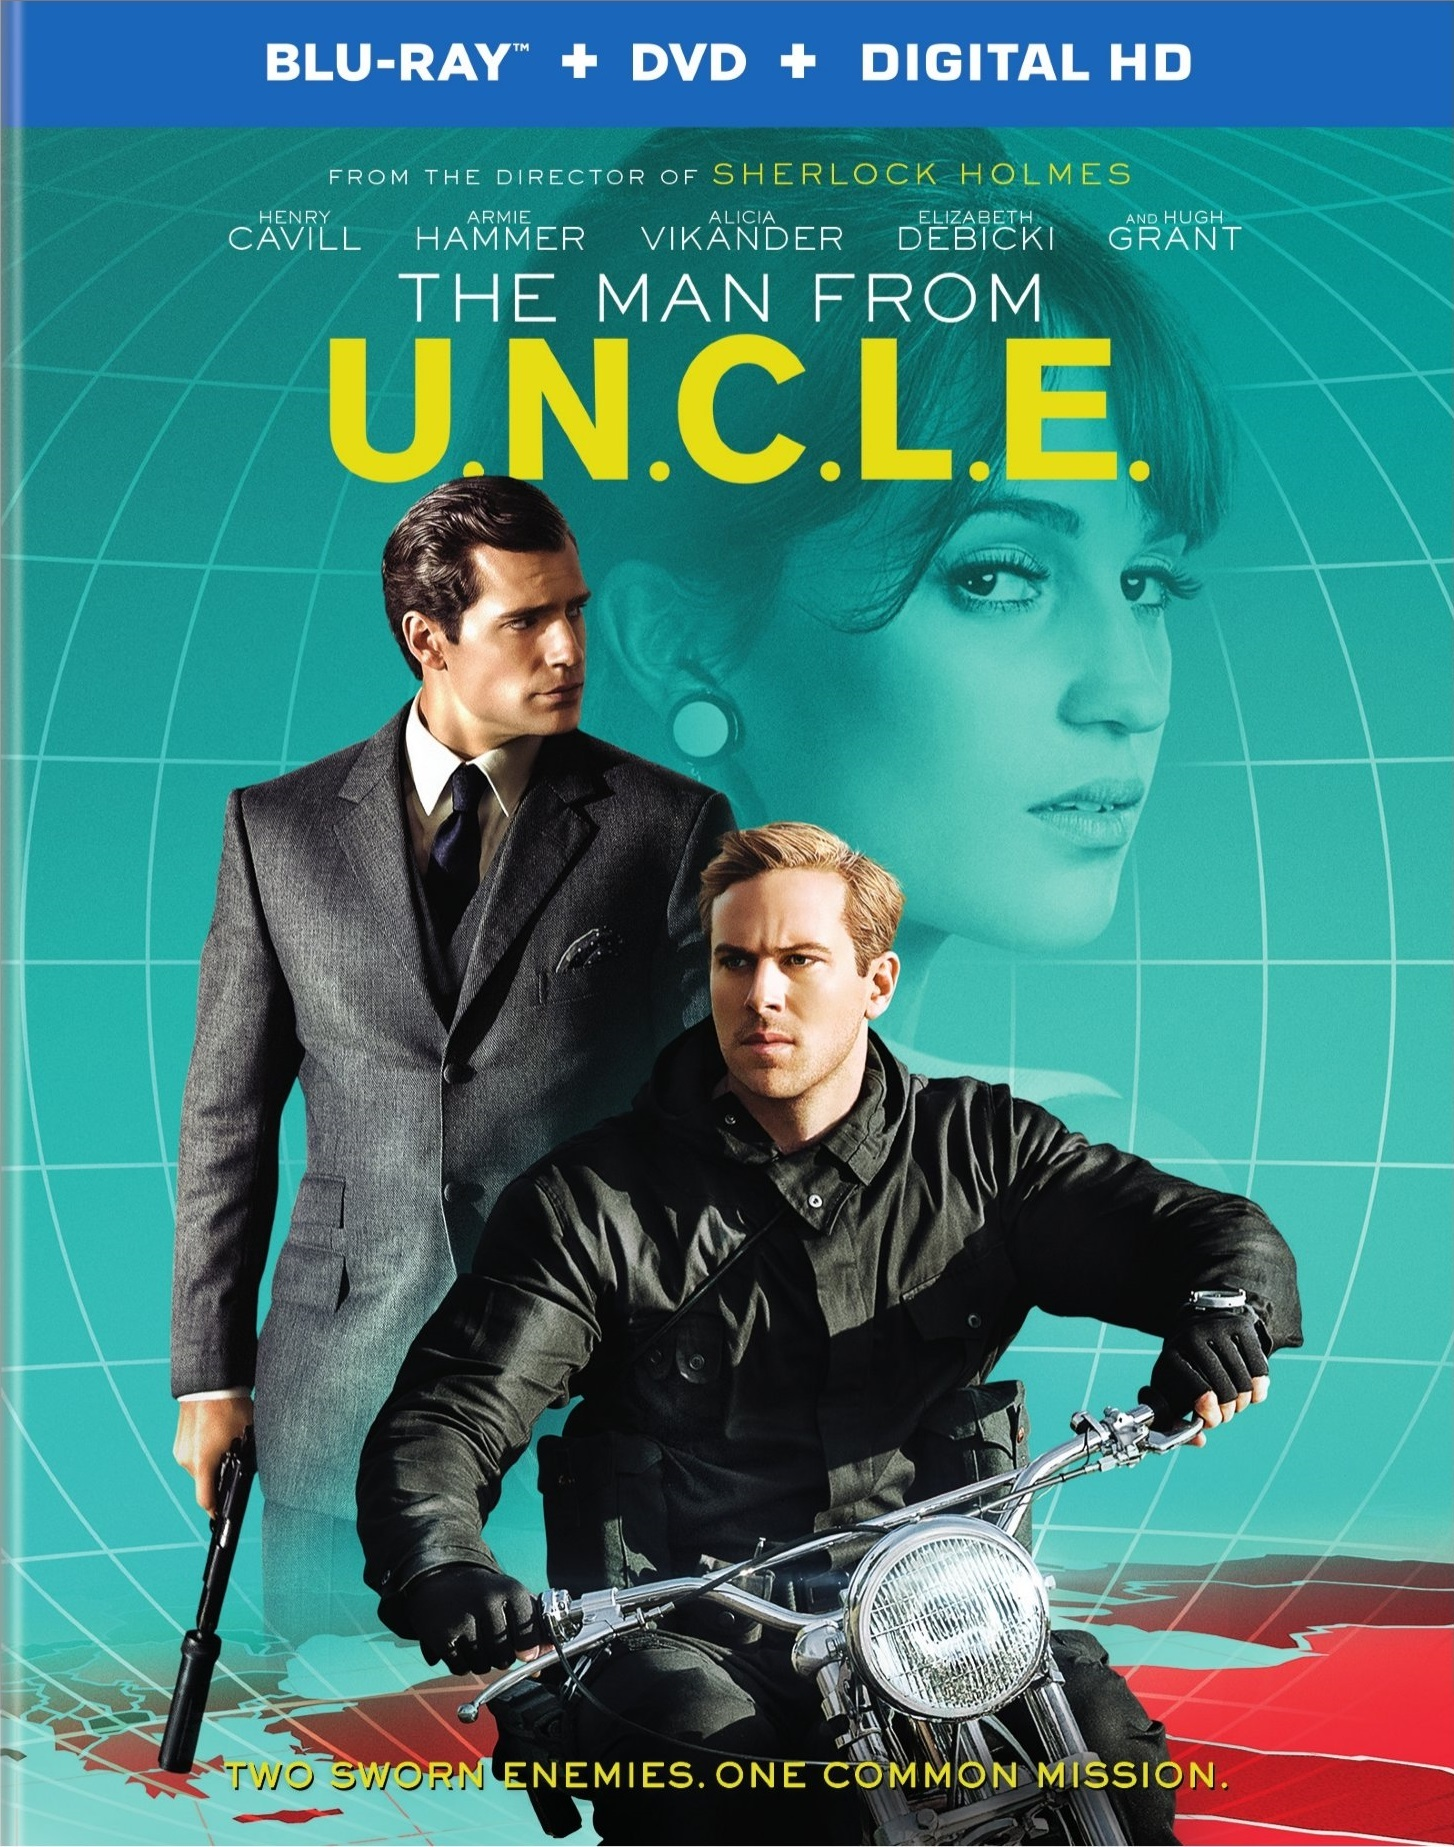 The Man from U.N.C.L.E. poster image